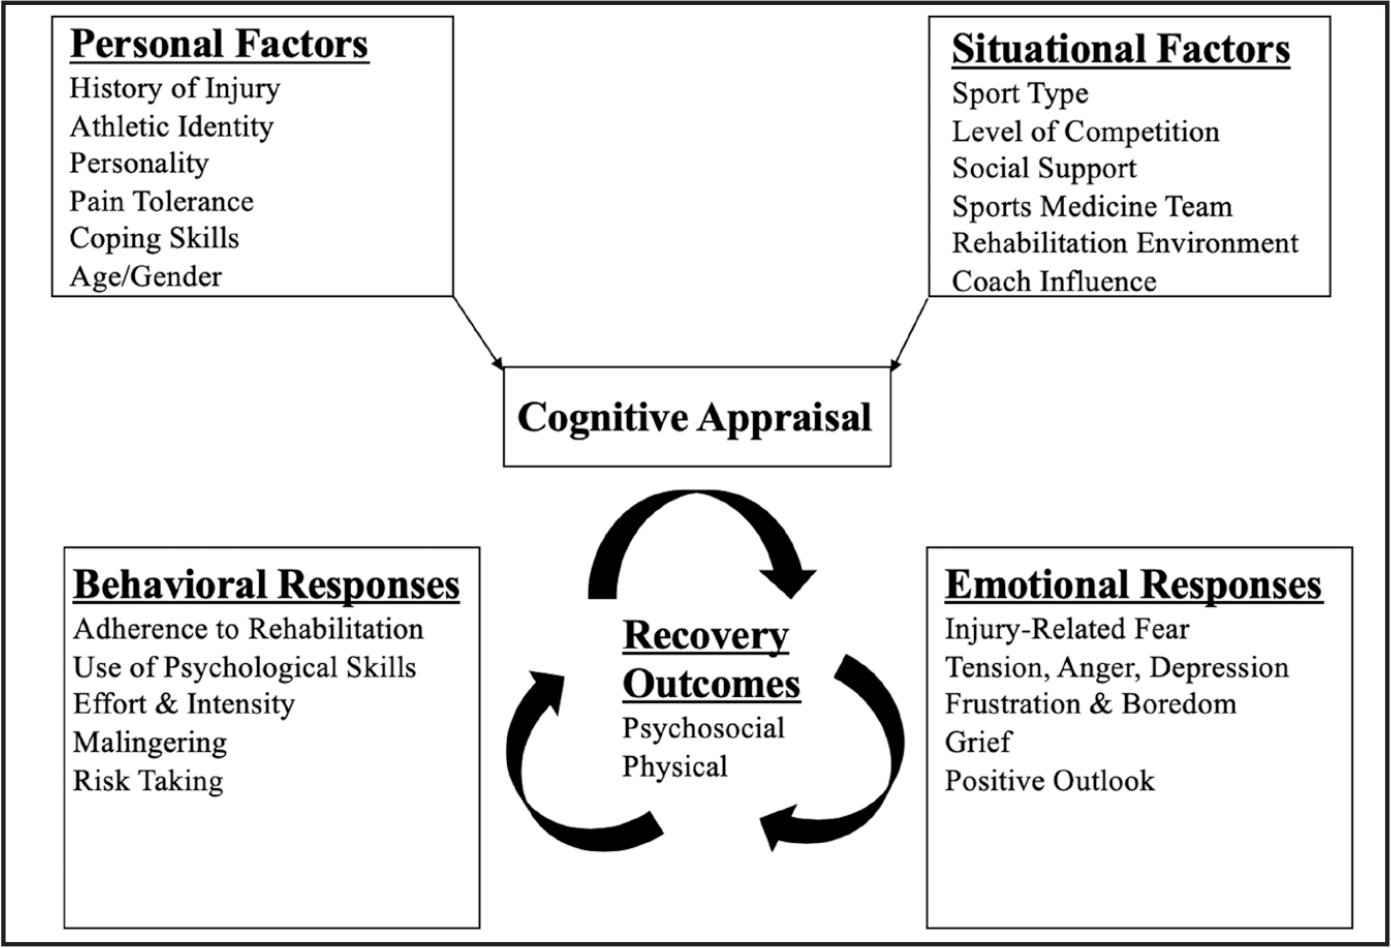 Cognitive Appraisal Model. Wiese-bjornstal DM, Smith AM, Shaffer SM, Morrey MA. An integrated model of response to sport injury: psychological and sociological dynamics. J Appl Sport Psychol. 1998;10(1):46–69. Reprinted by permission of the Association for Applied Sport Psychology, www.applied-sportpsychol.org